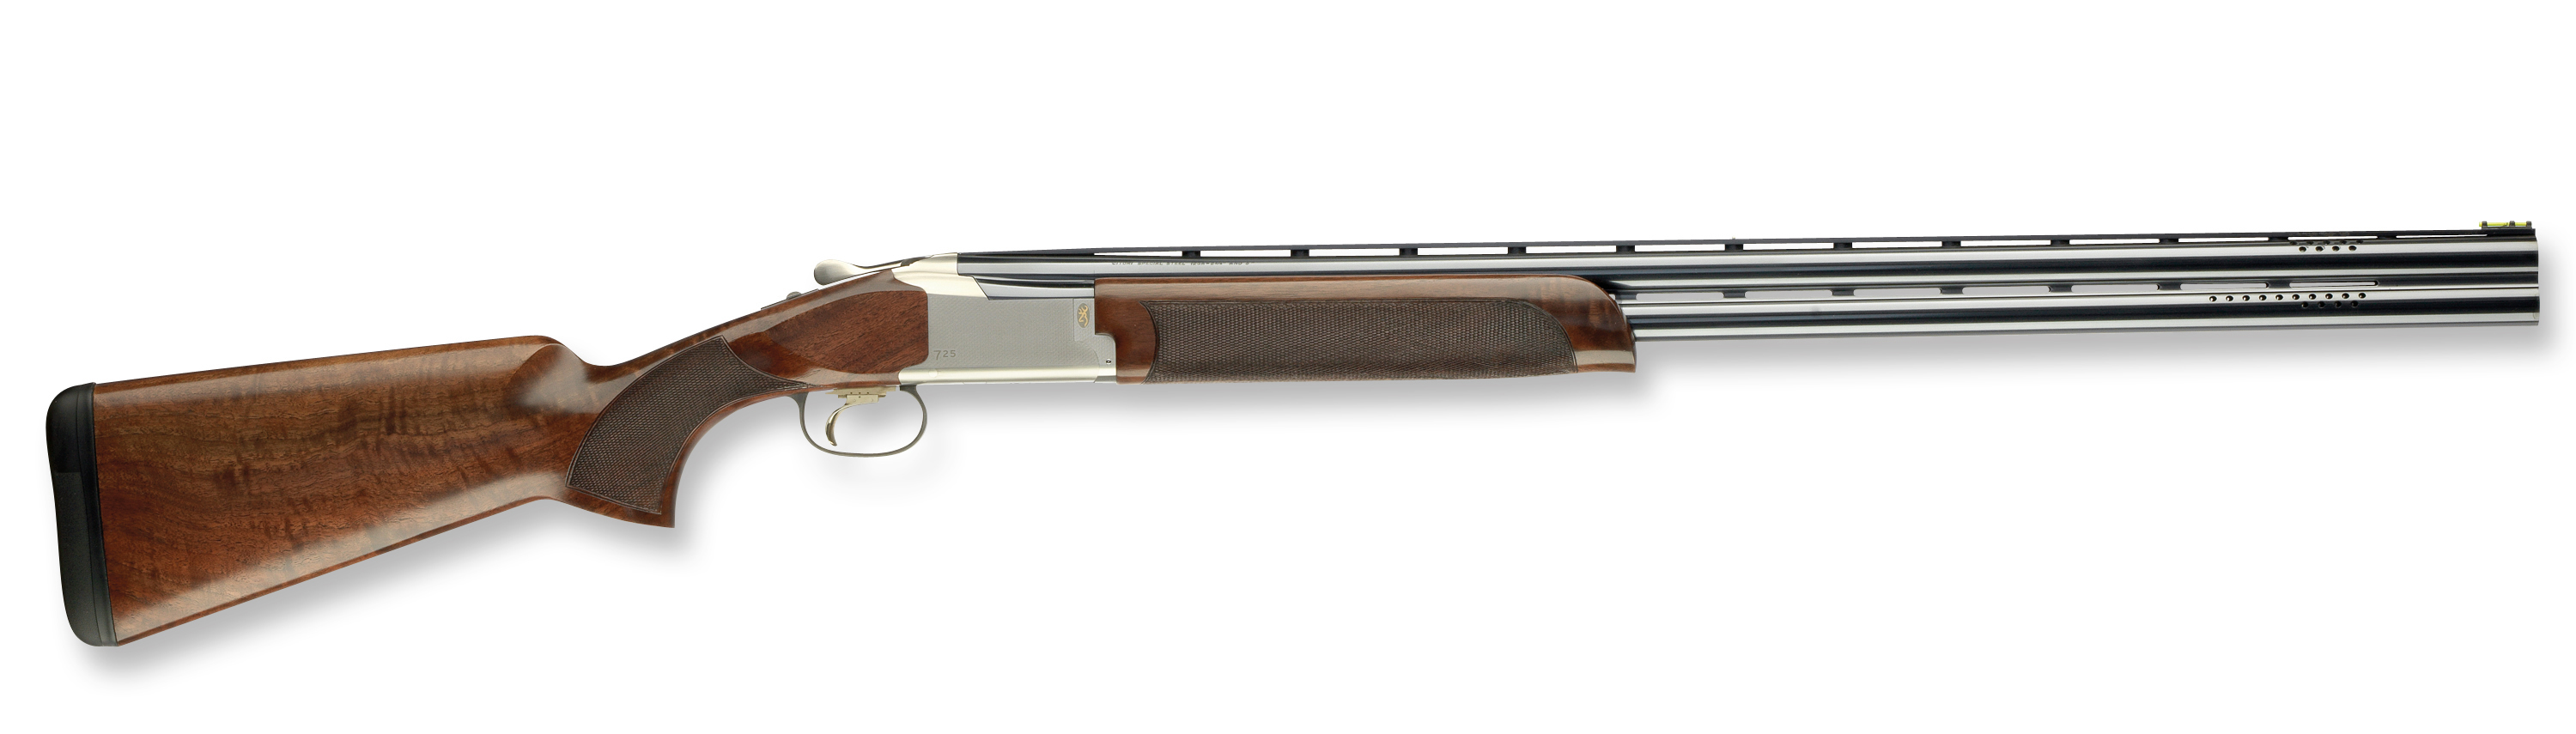 The new Citori 725 12-gauge O/U shotgun's receiver is significantly lower than other Citori